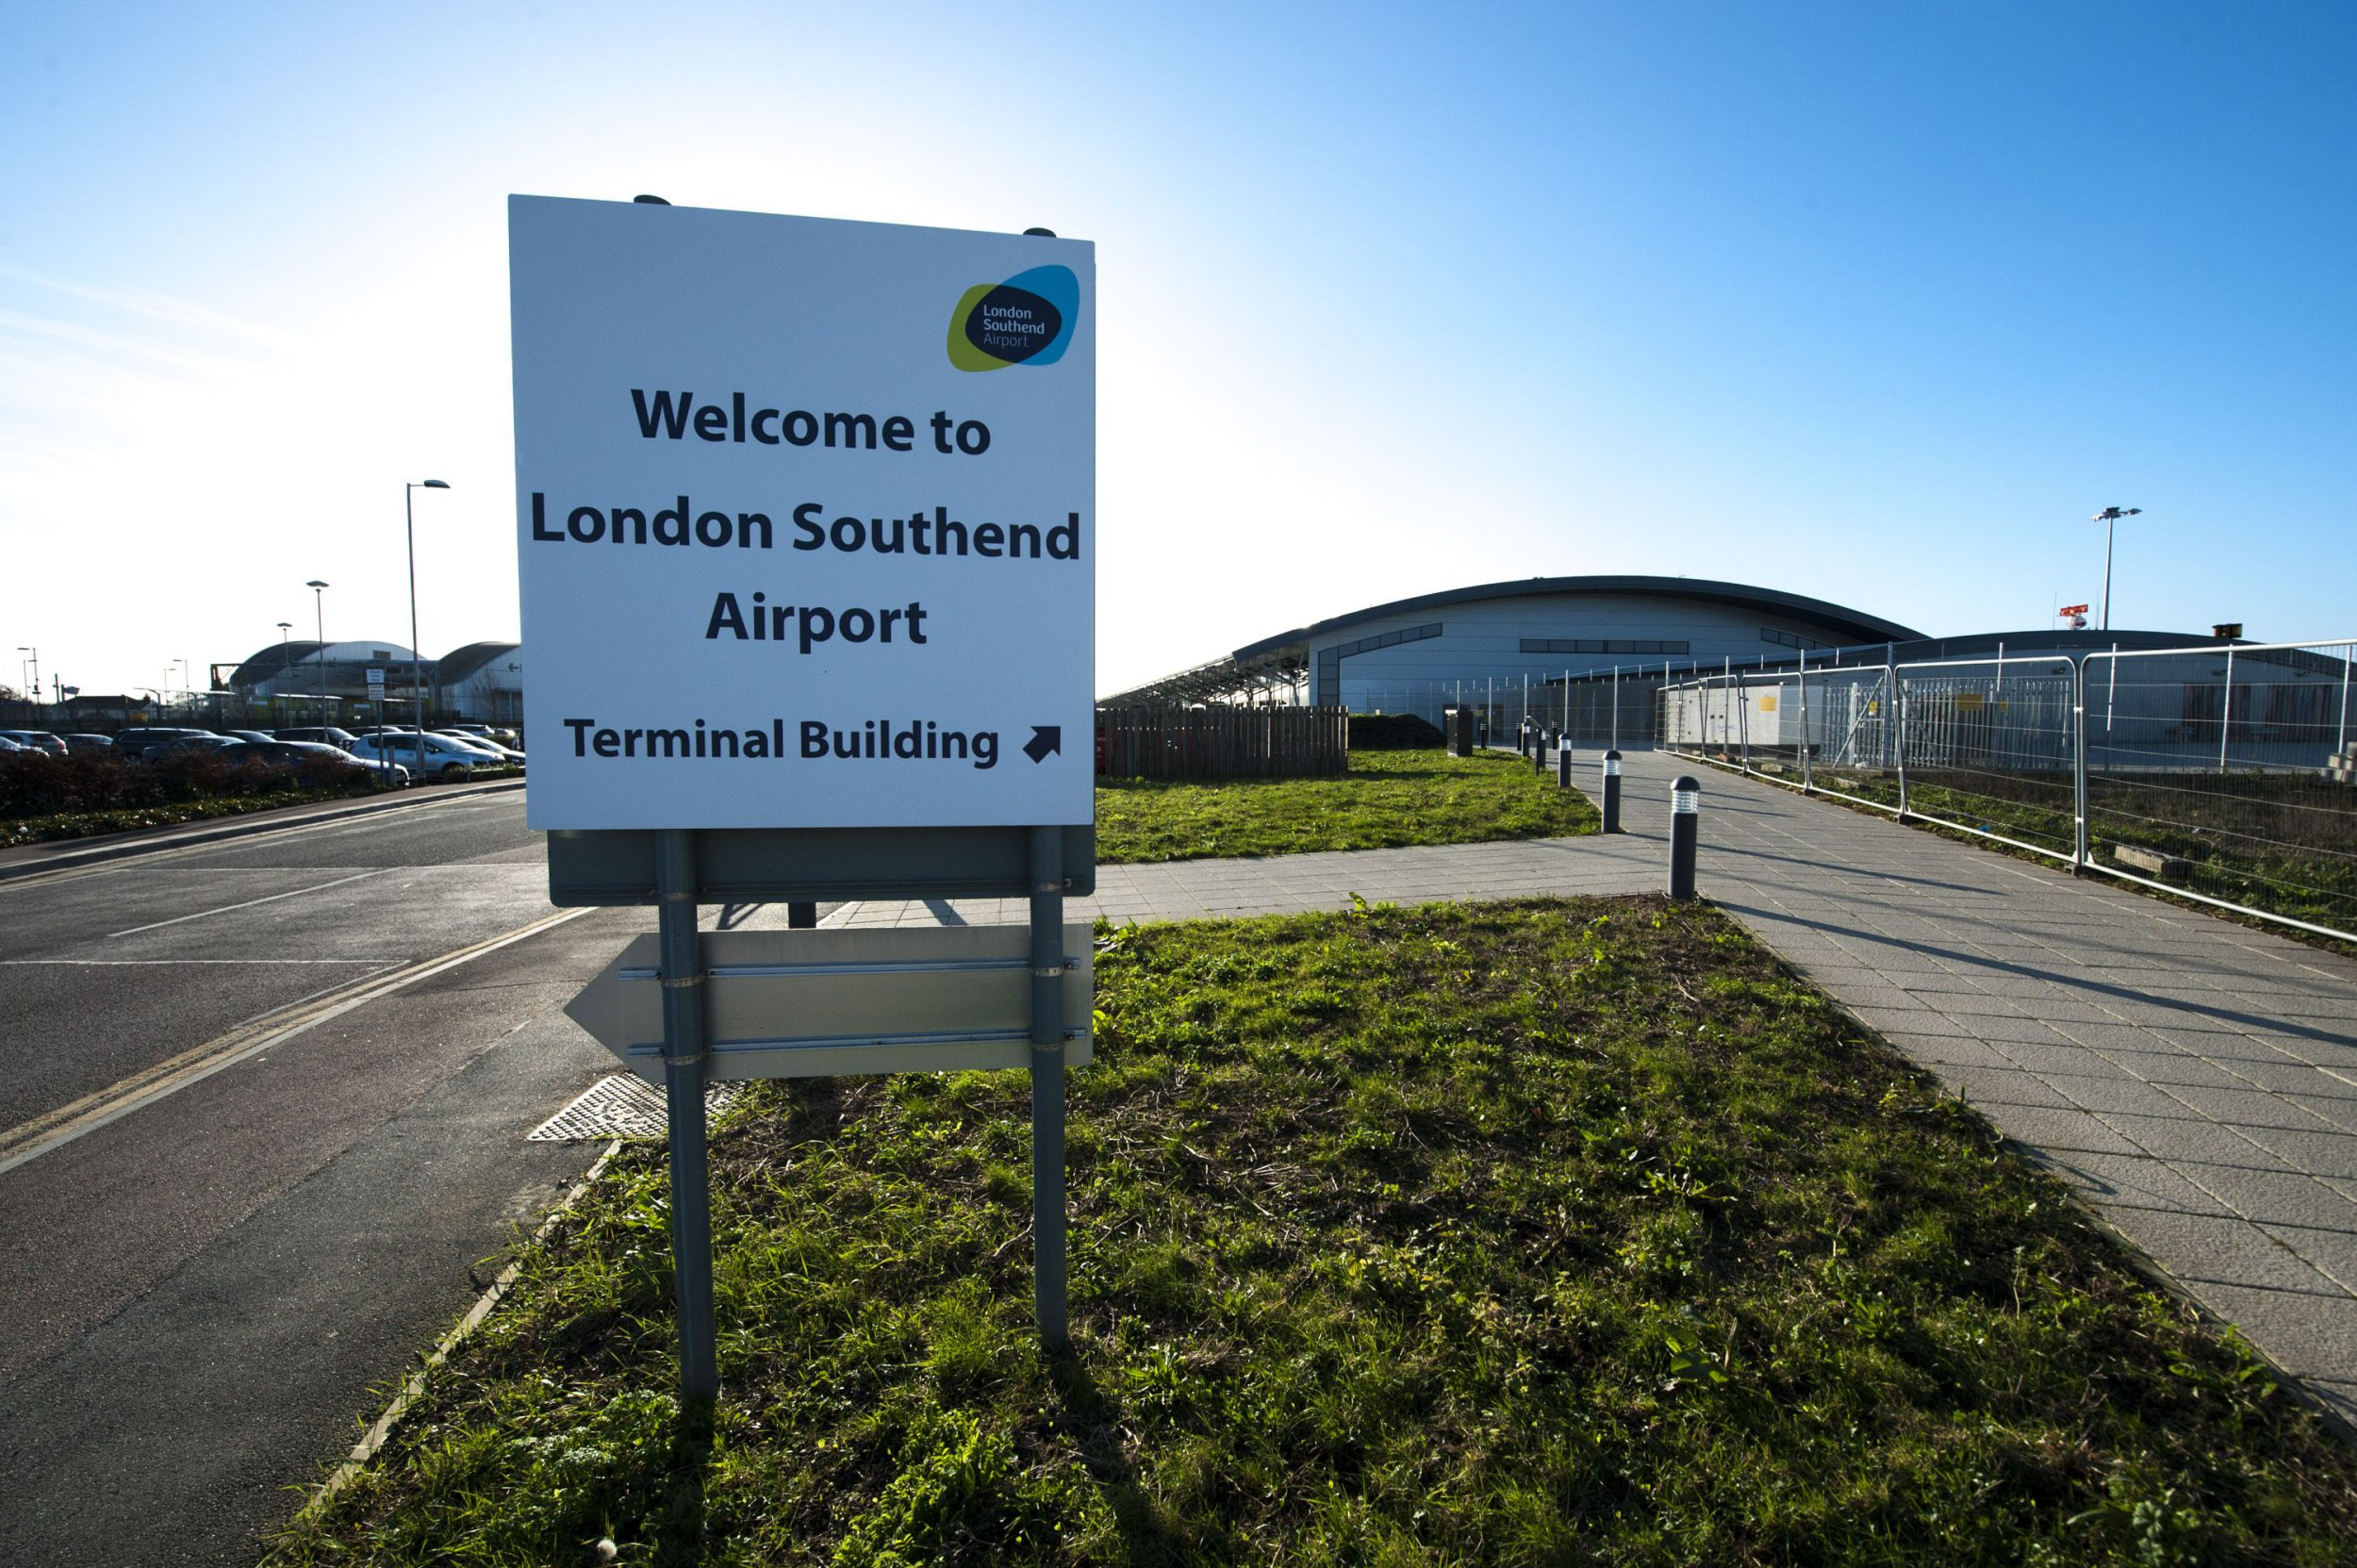 You have to go 41 miles out of London for London's 'best airport'